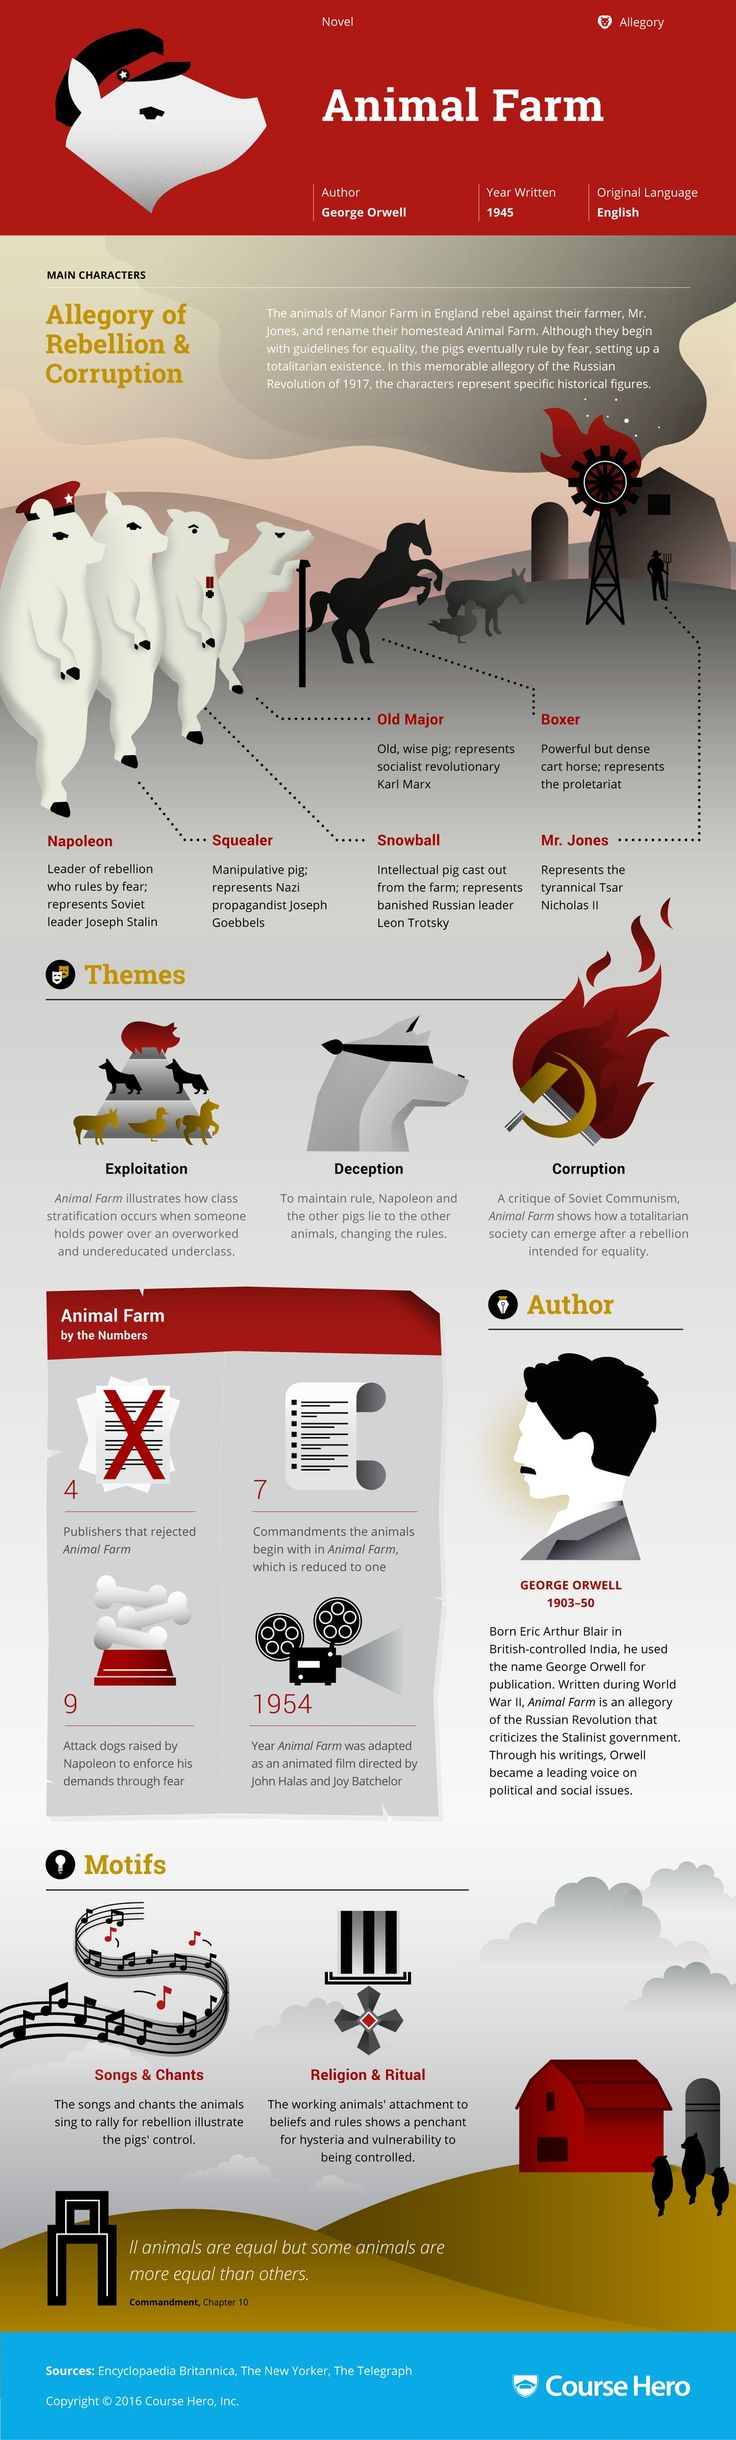 Animal Farm Infographic | Course Hero